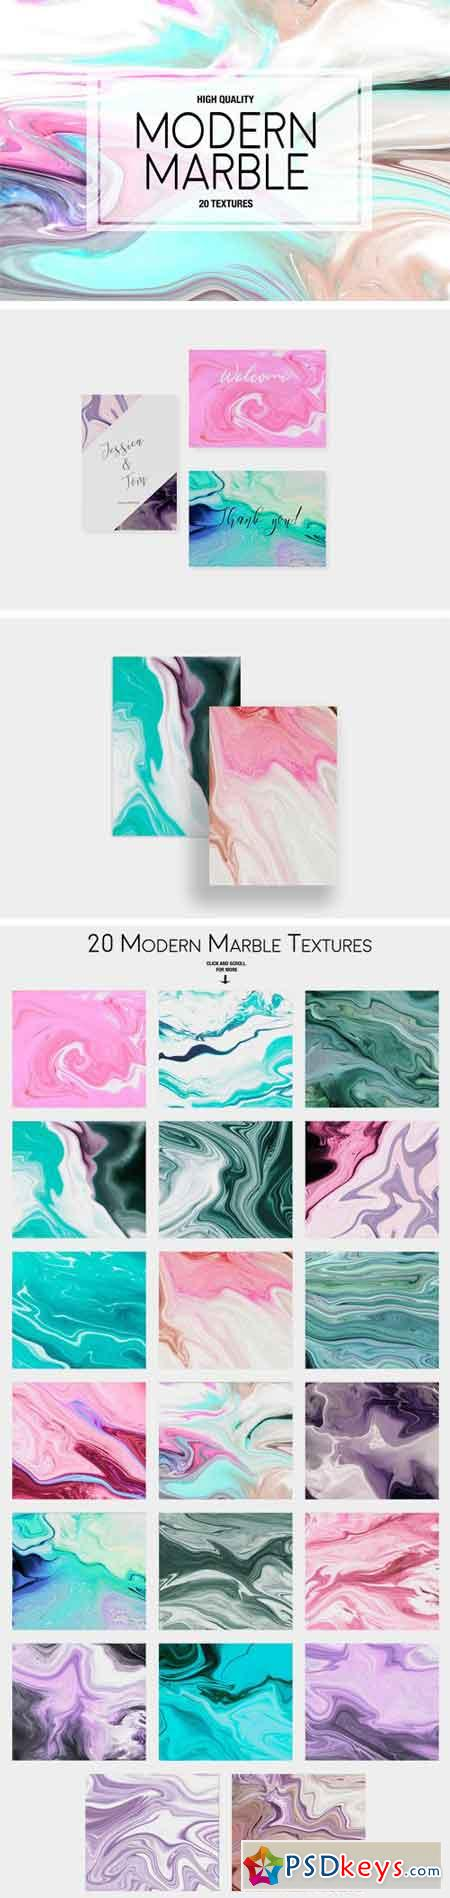 Marble Paper Textures 2422489